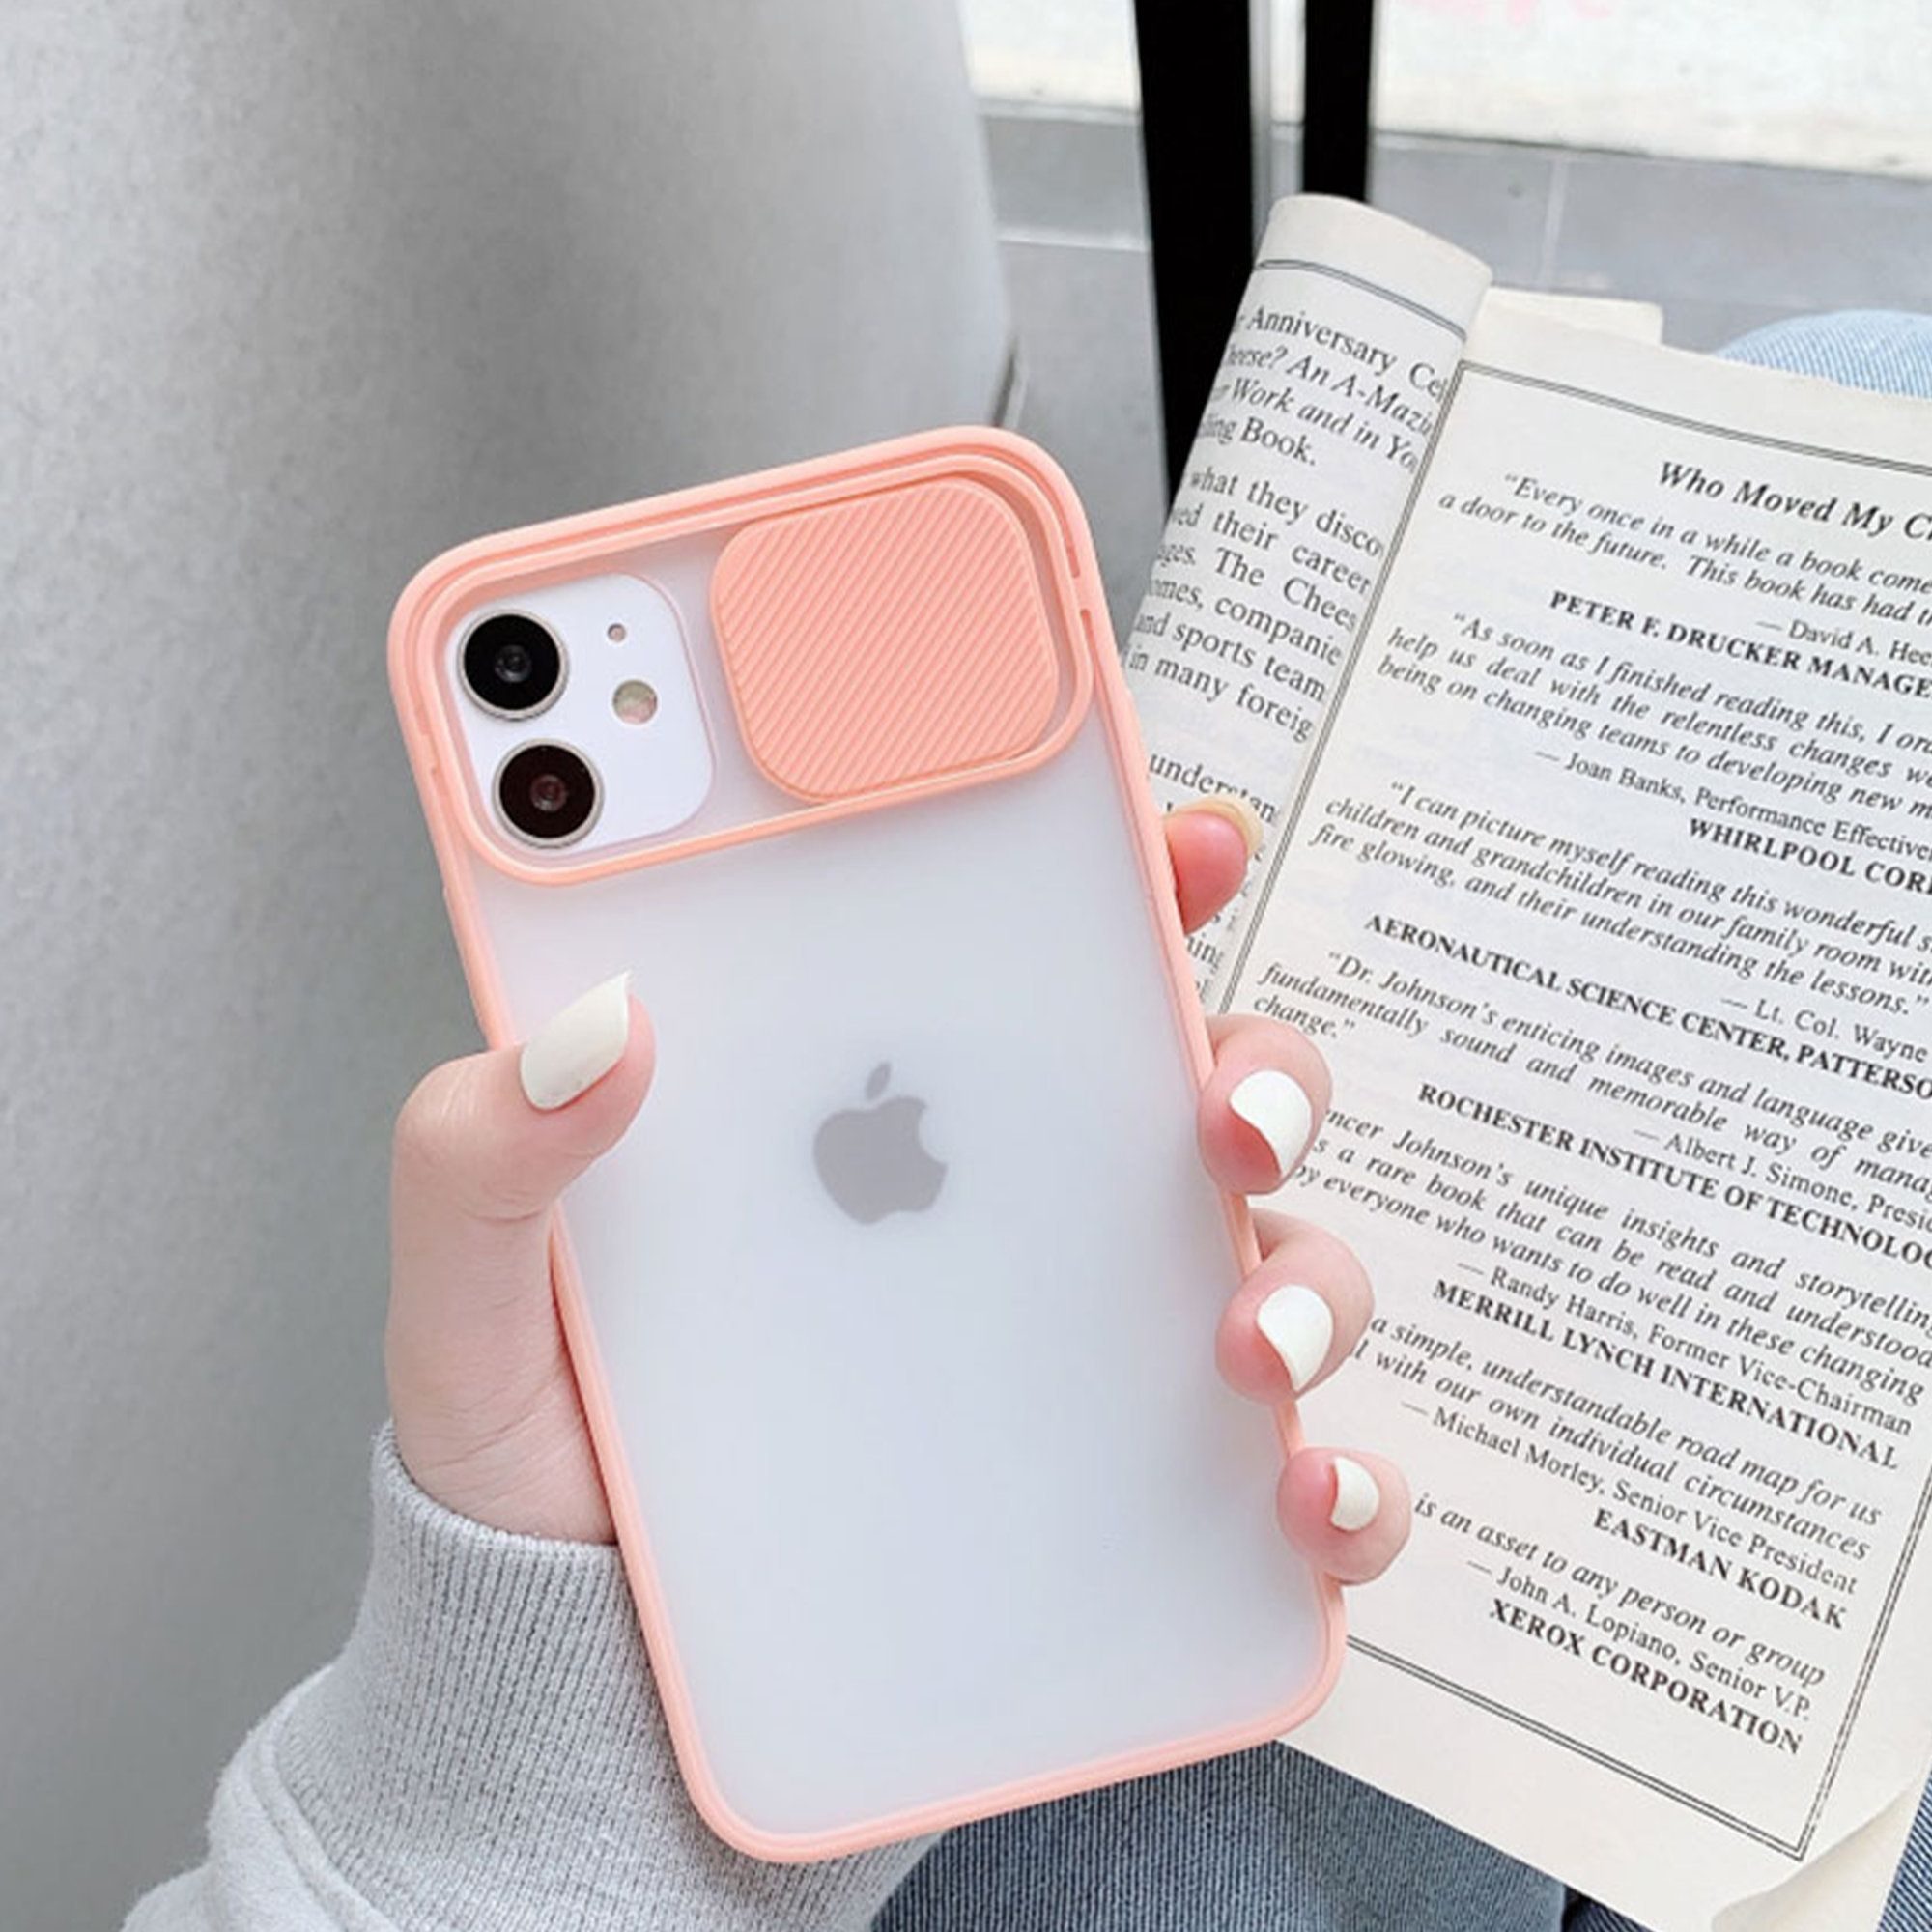 Iphone Case Clear Slide Camera Lens Protection Shockproof Etsy In 2021 Stylish Iphone Cases Iphone Phone Cases Iphone Case Protective